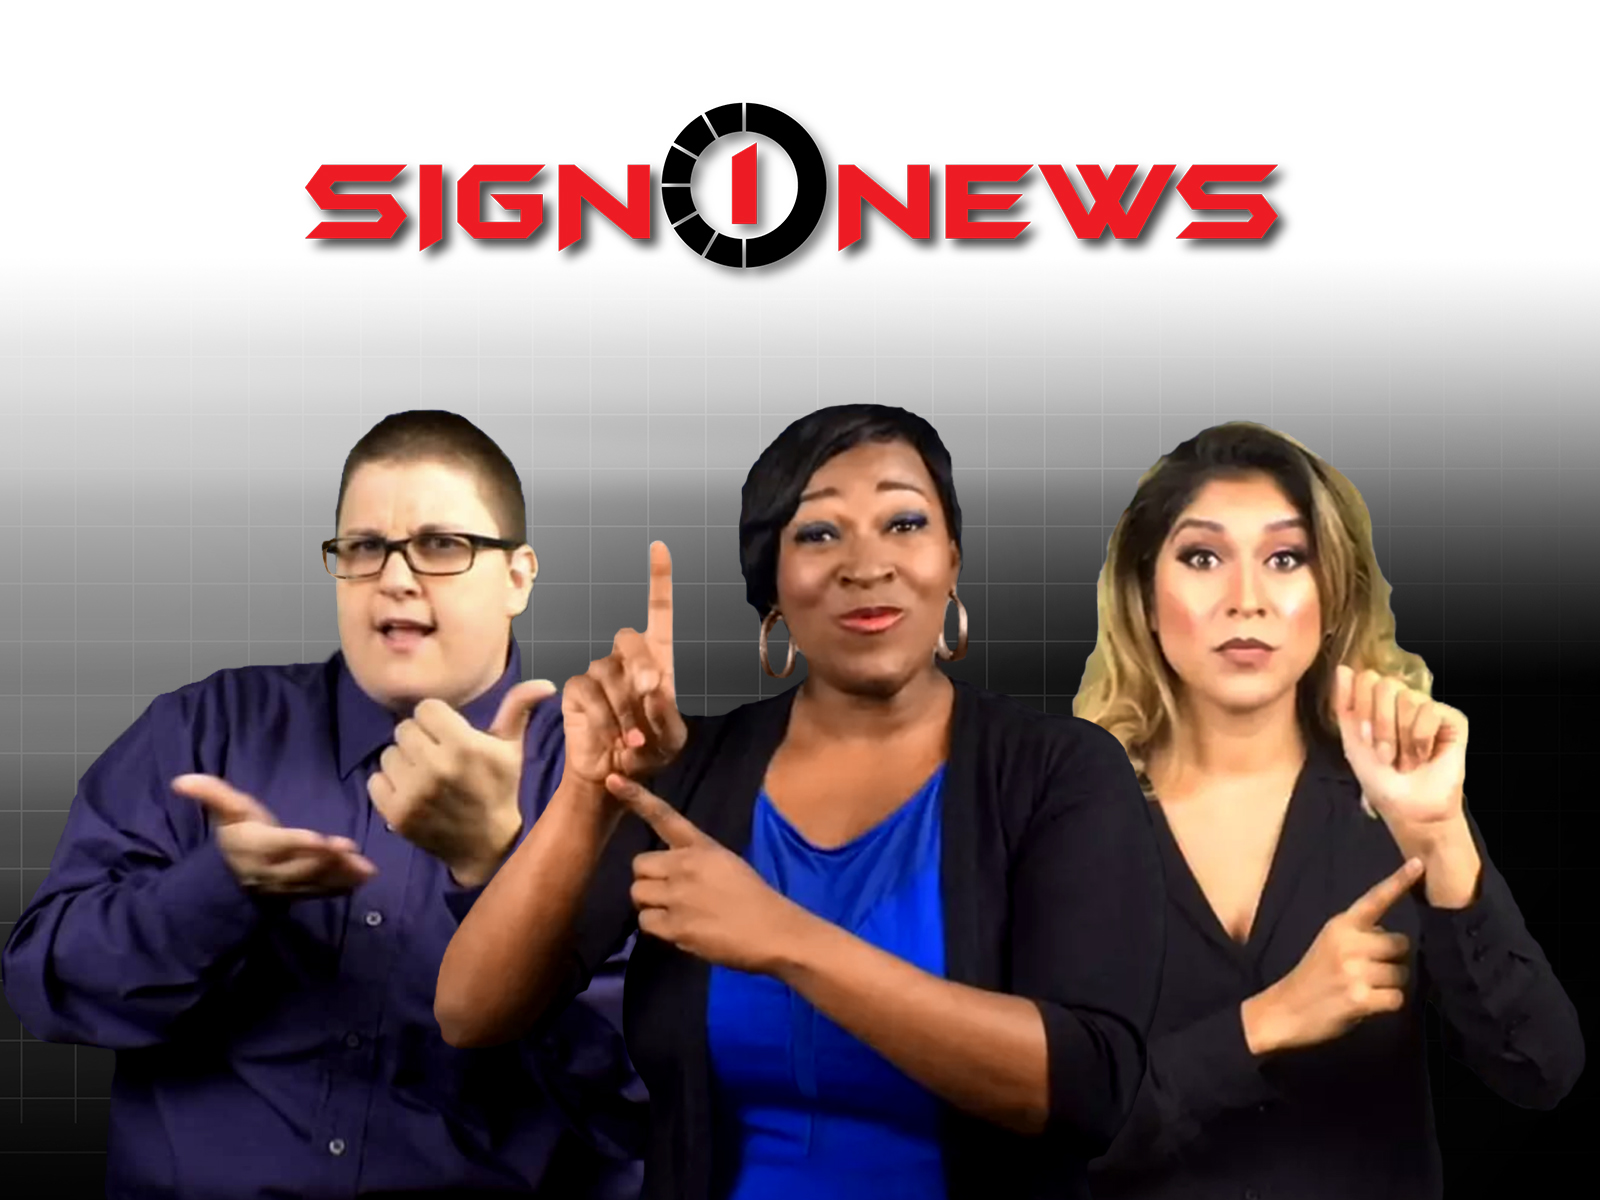 Latest News News For The Deaf Community Powered By Cnn In American